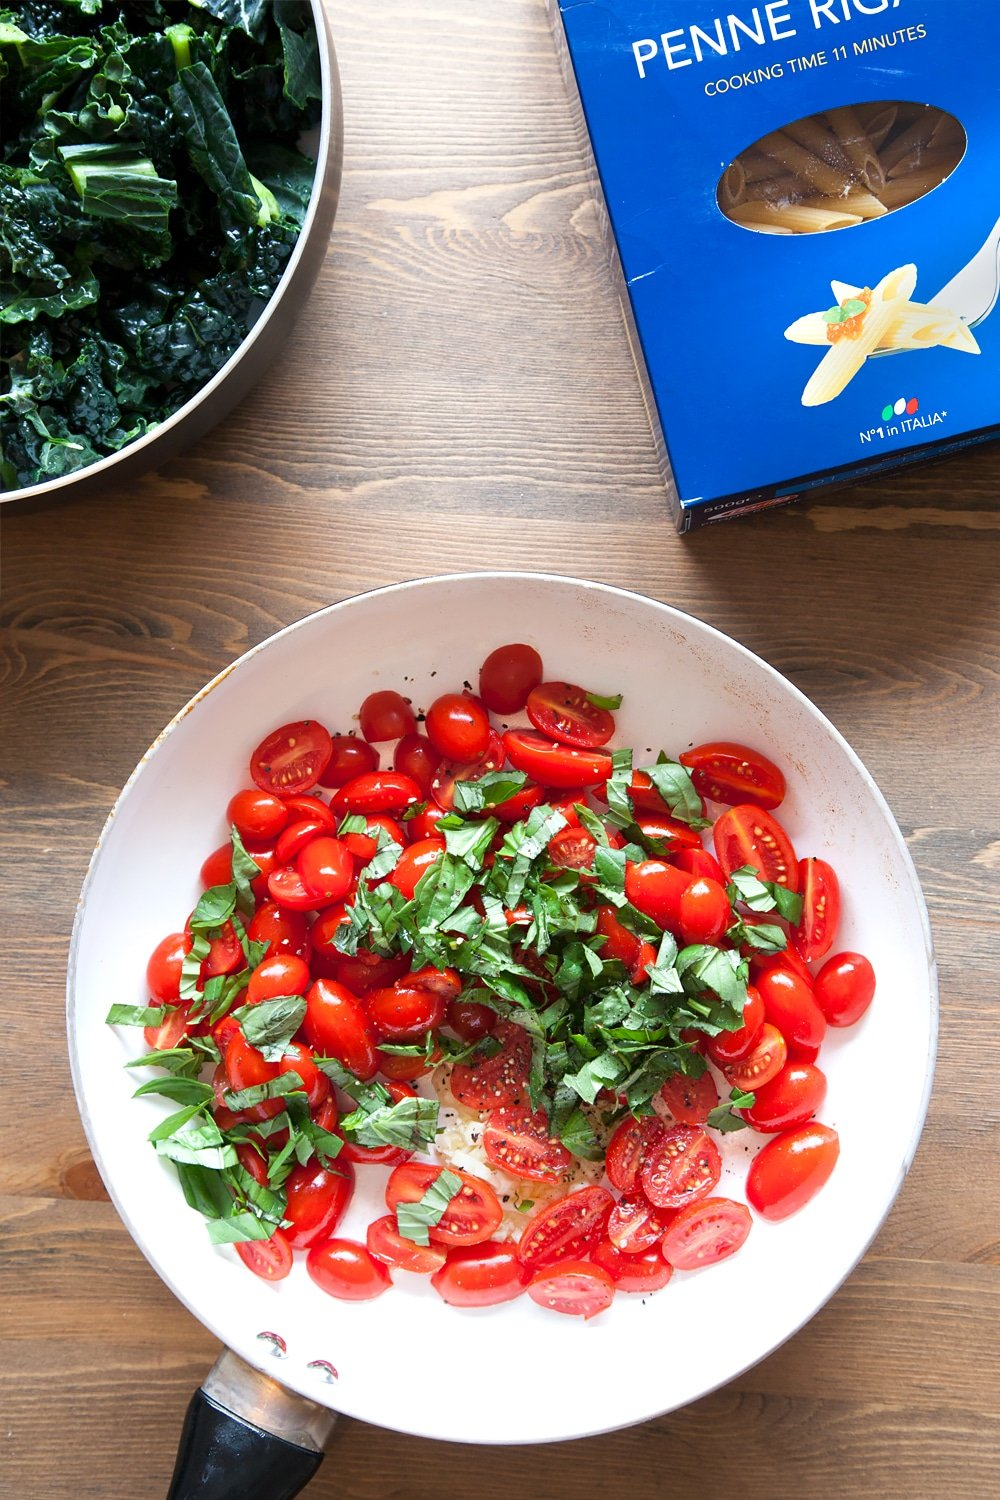 Preparing the tomatoes and basil in a frying pan